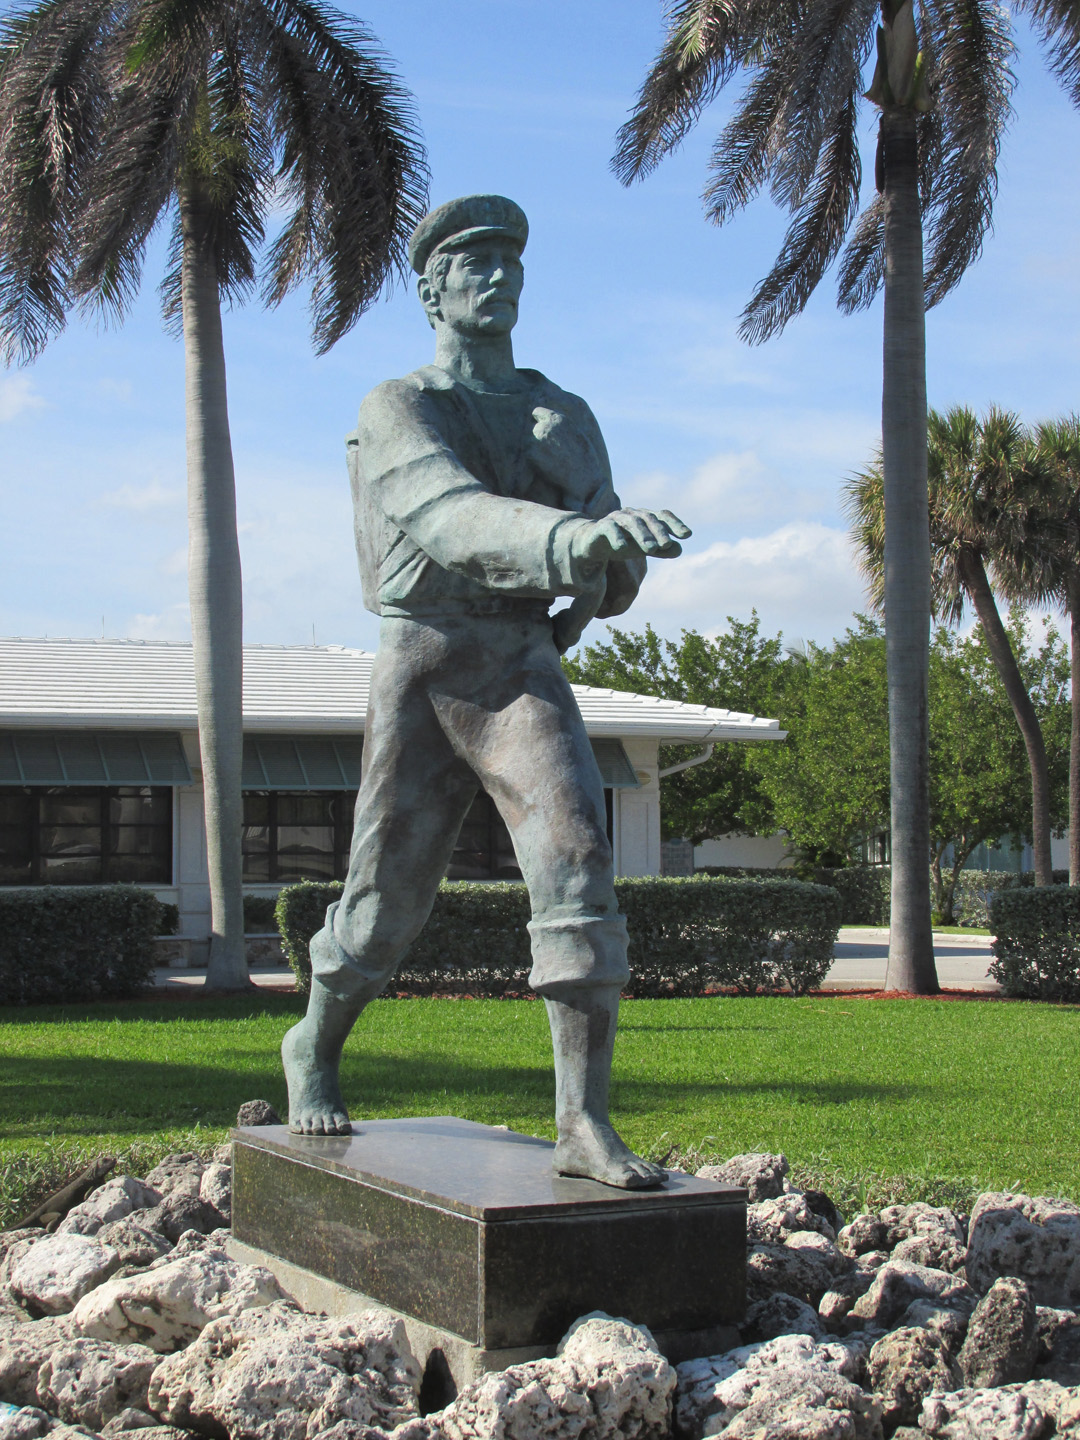 Baring their soles to deliver the mail: The barefoot mailman statue of  Hillsboro Beach, Florida